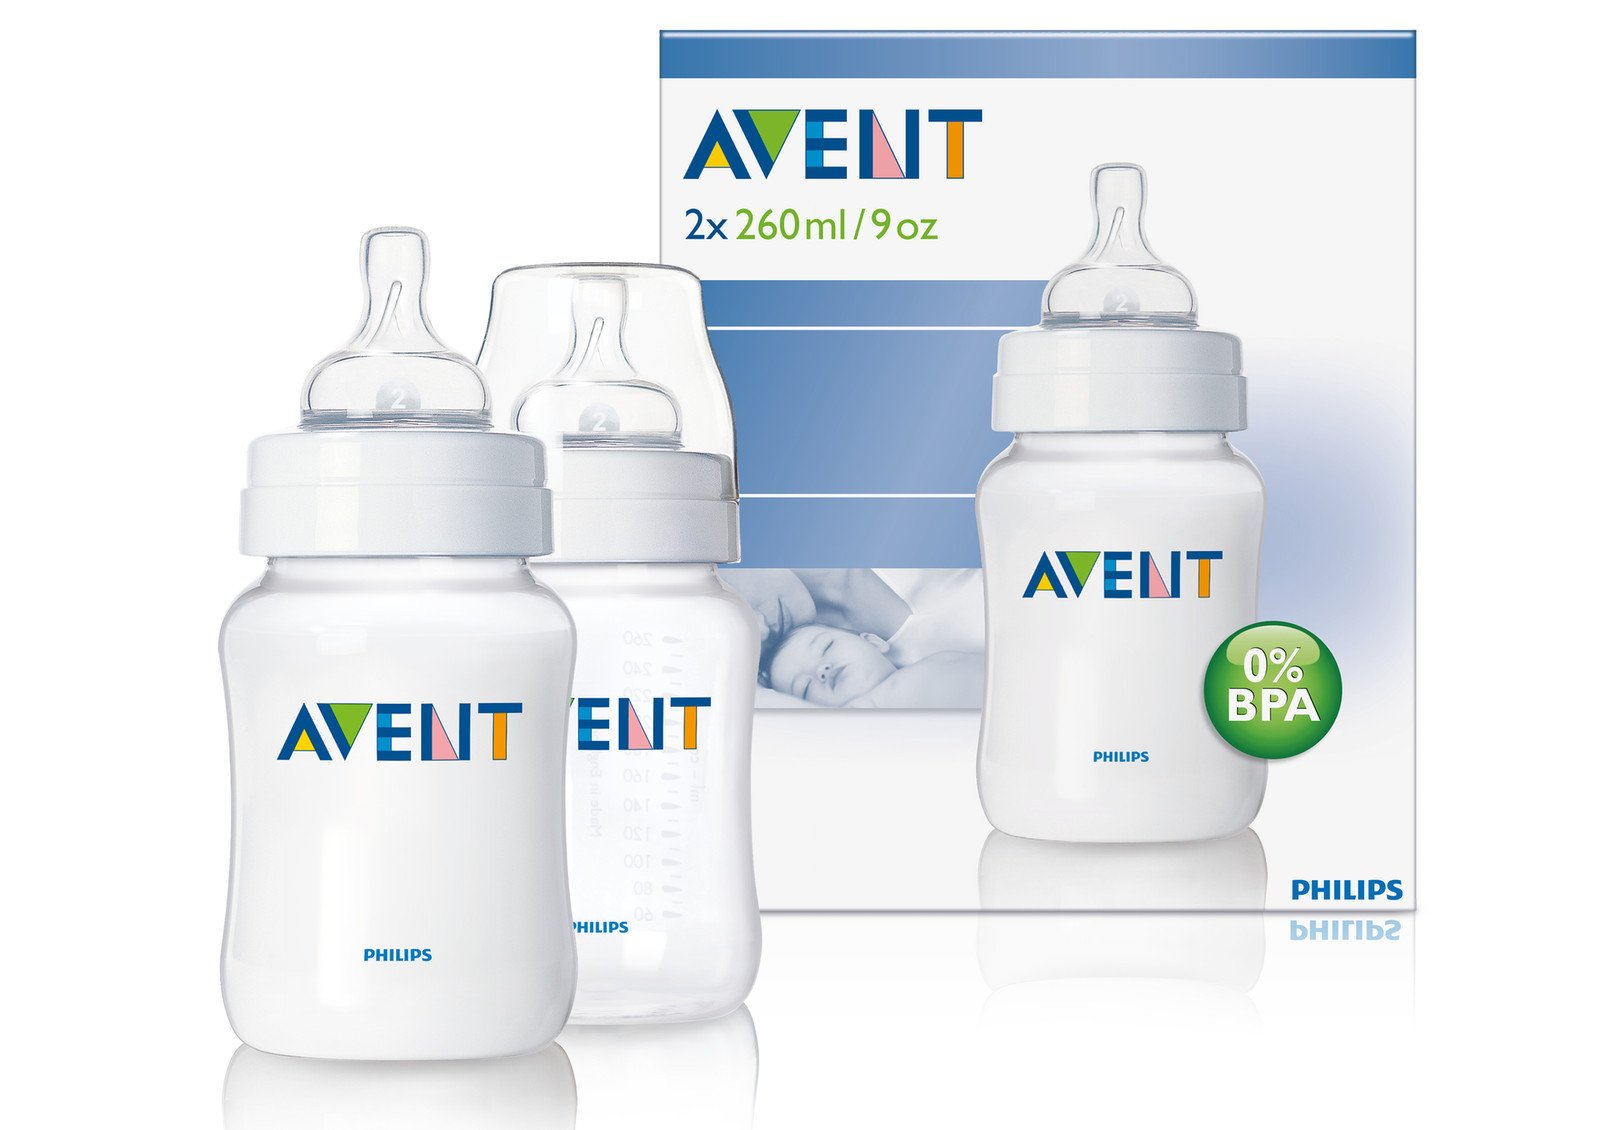 Philips Avent Airflex 260ml 9oz Pp Classic Baby Bottles Scf683/27 Twin 2 Pack Best Quality Original From United Kingdom Fast Shipping by Philips AVENT